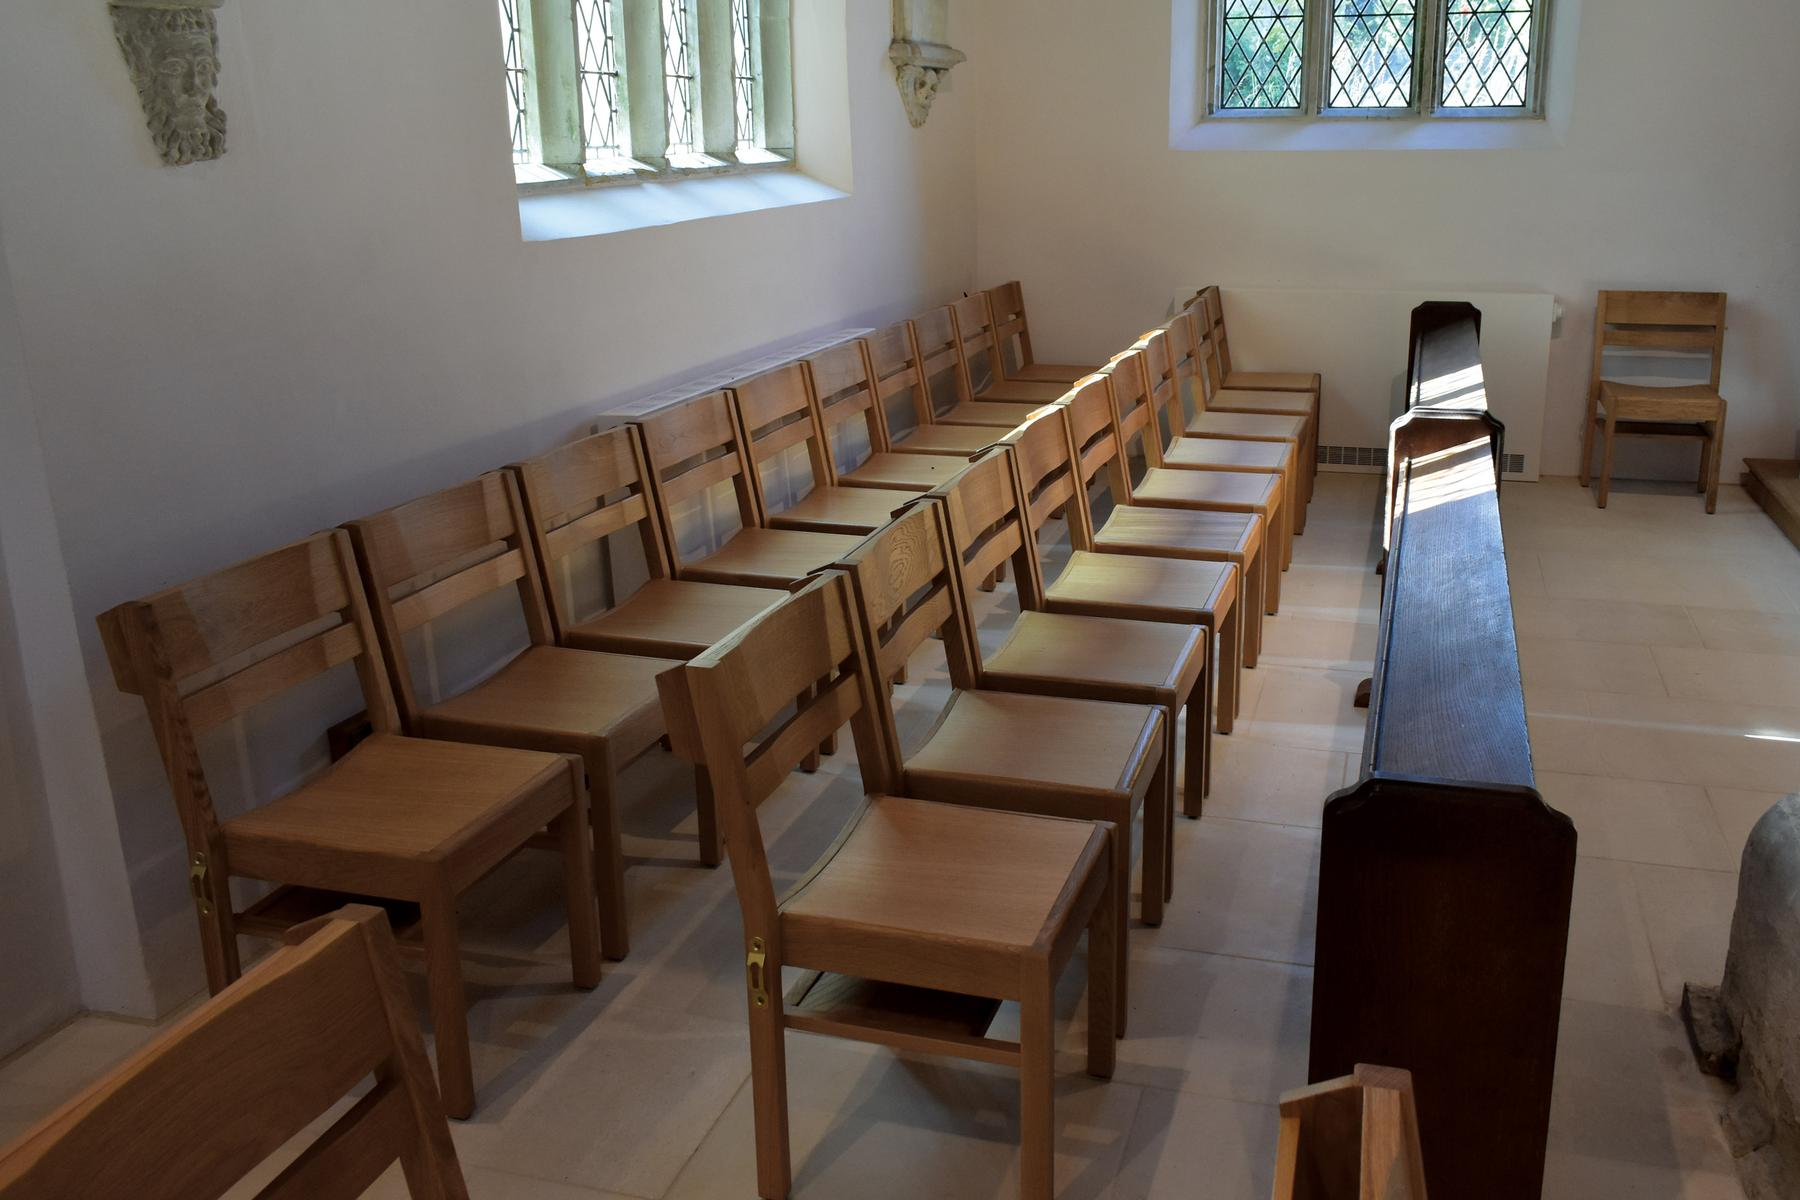 St Andrew's, Donhead St Andrew chairs